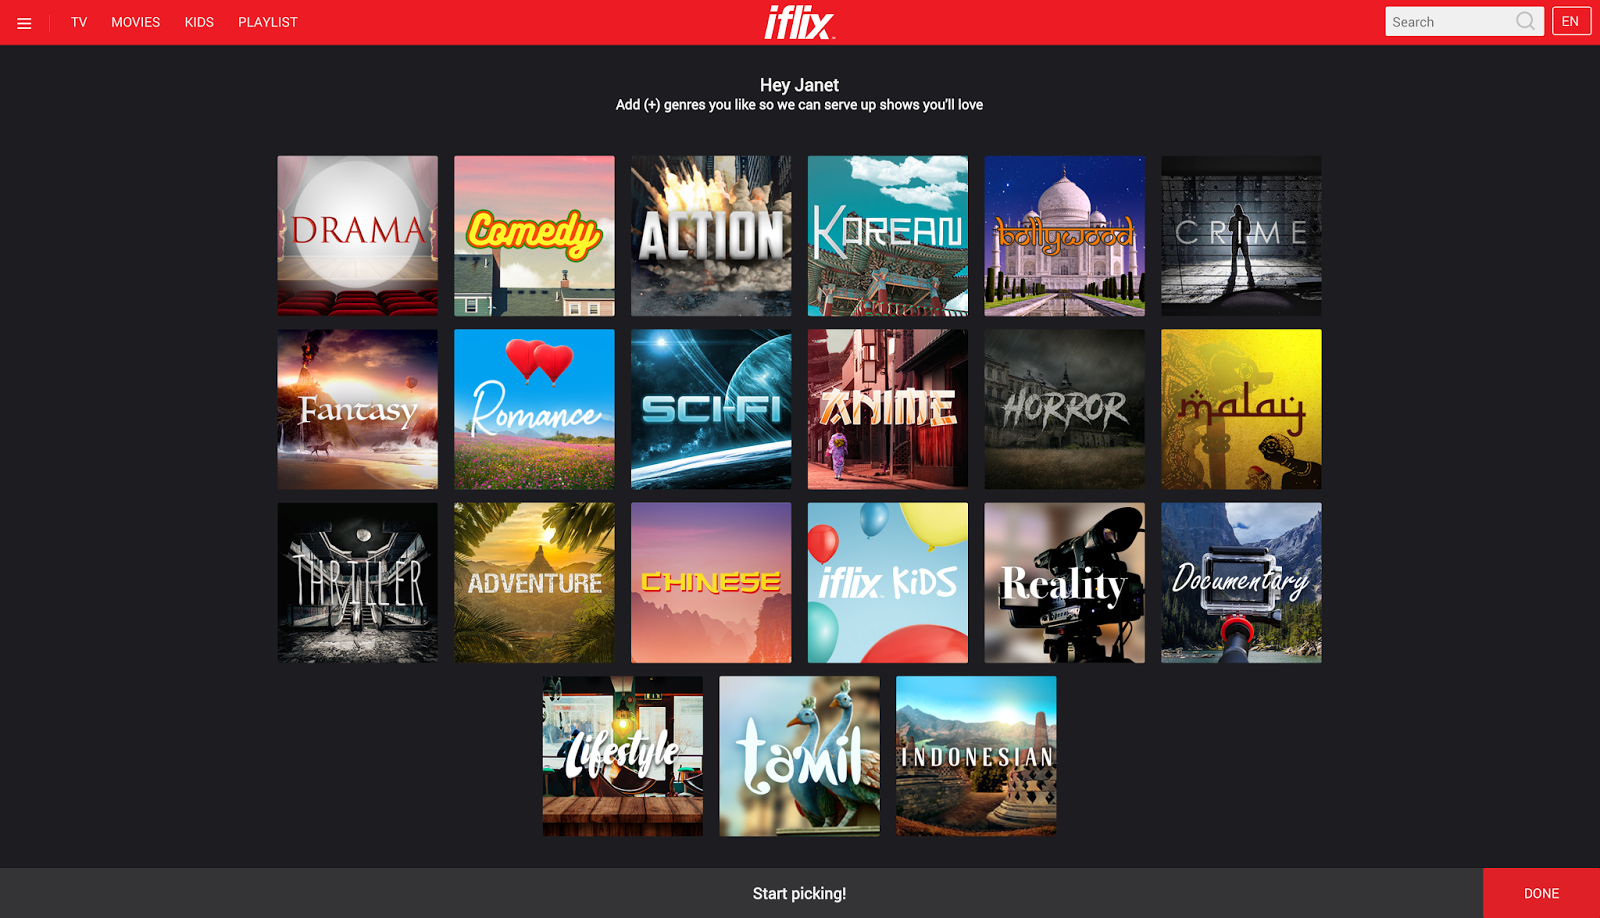 Giveaway get a free month of iflix on us heres the details on what better way to get a voucher code for a free month of iflix goodness we currently have a lot of codes to giveaway and stopboris Gallery